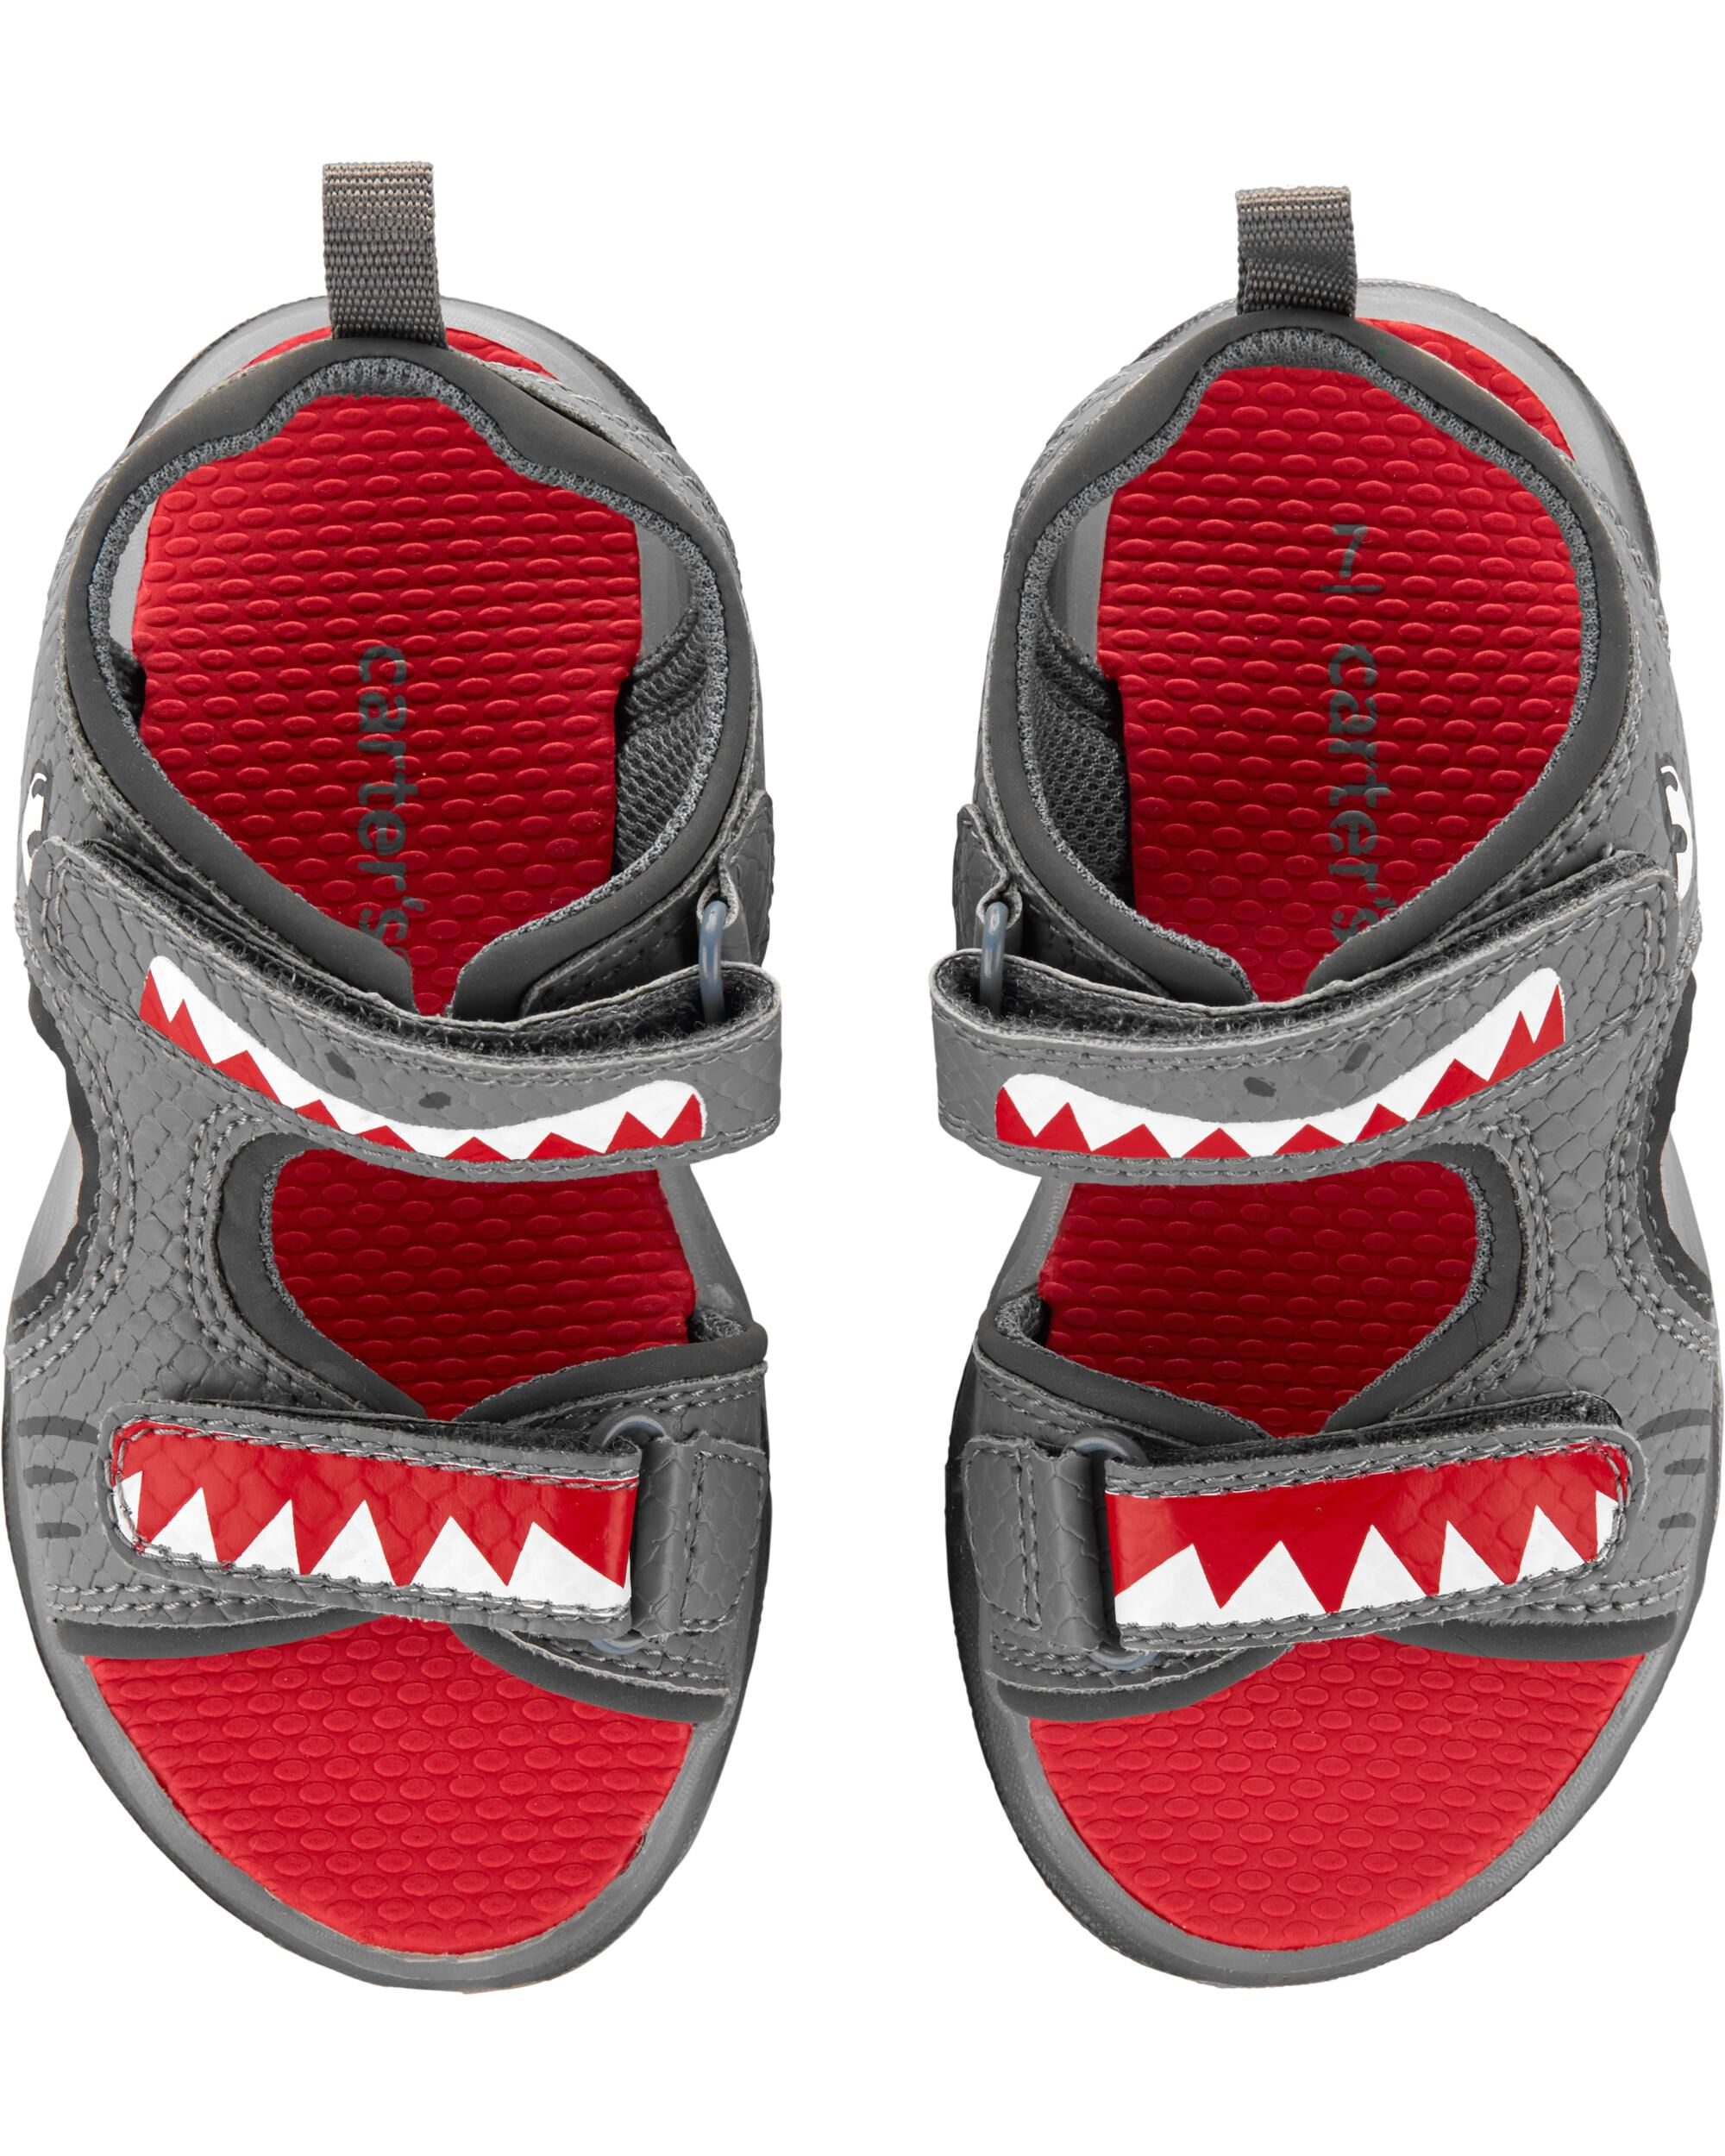 Responsible Fashion Newborn Baby Boys Girls Shoes For Kids Classic Sneakers Infant Indoor Crib Shoes Toddler Boys Girls Cool First Walkers 50% OFF Mother & Kids